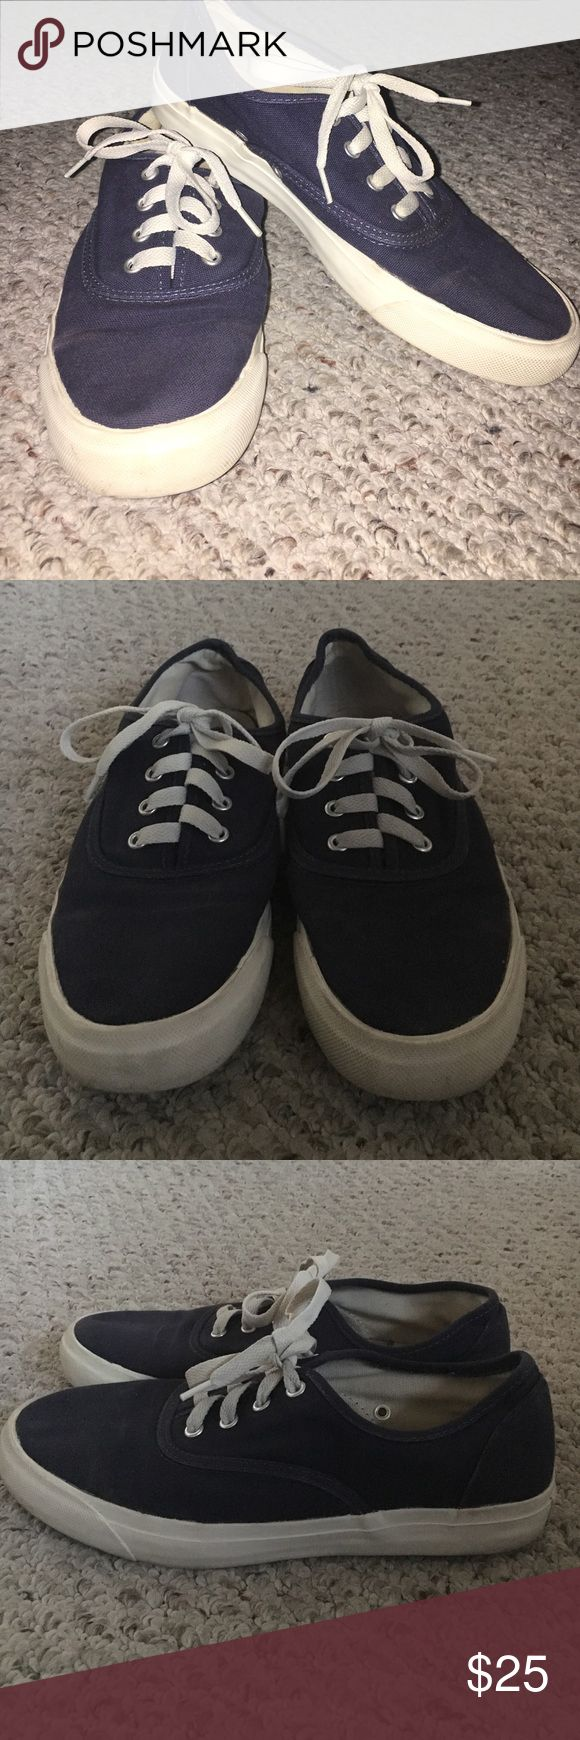 Vans Navy blue, white sole. Pro-keds. Super comfortable! Make an offer, all of my prices are negotiable. Questions are welcomed and model pictures are available upon request! Bundle these shoes with other items from my closet and receive a discount on your whole purchase! pro-keds Shoes Sneakers